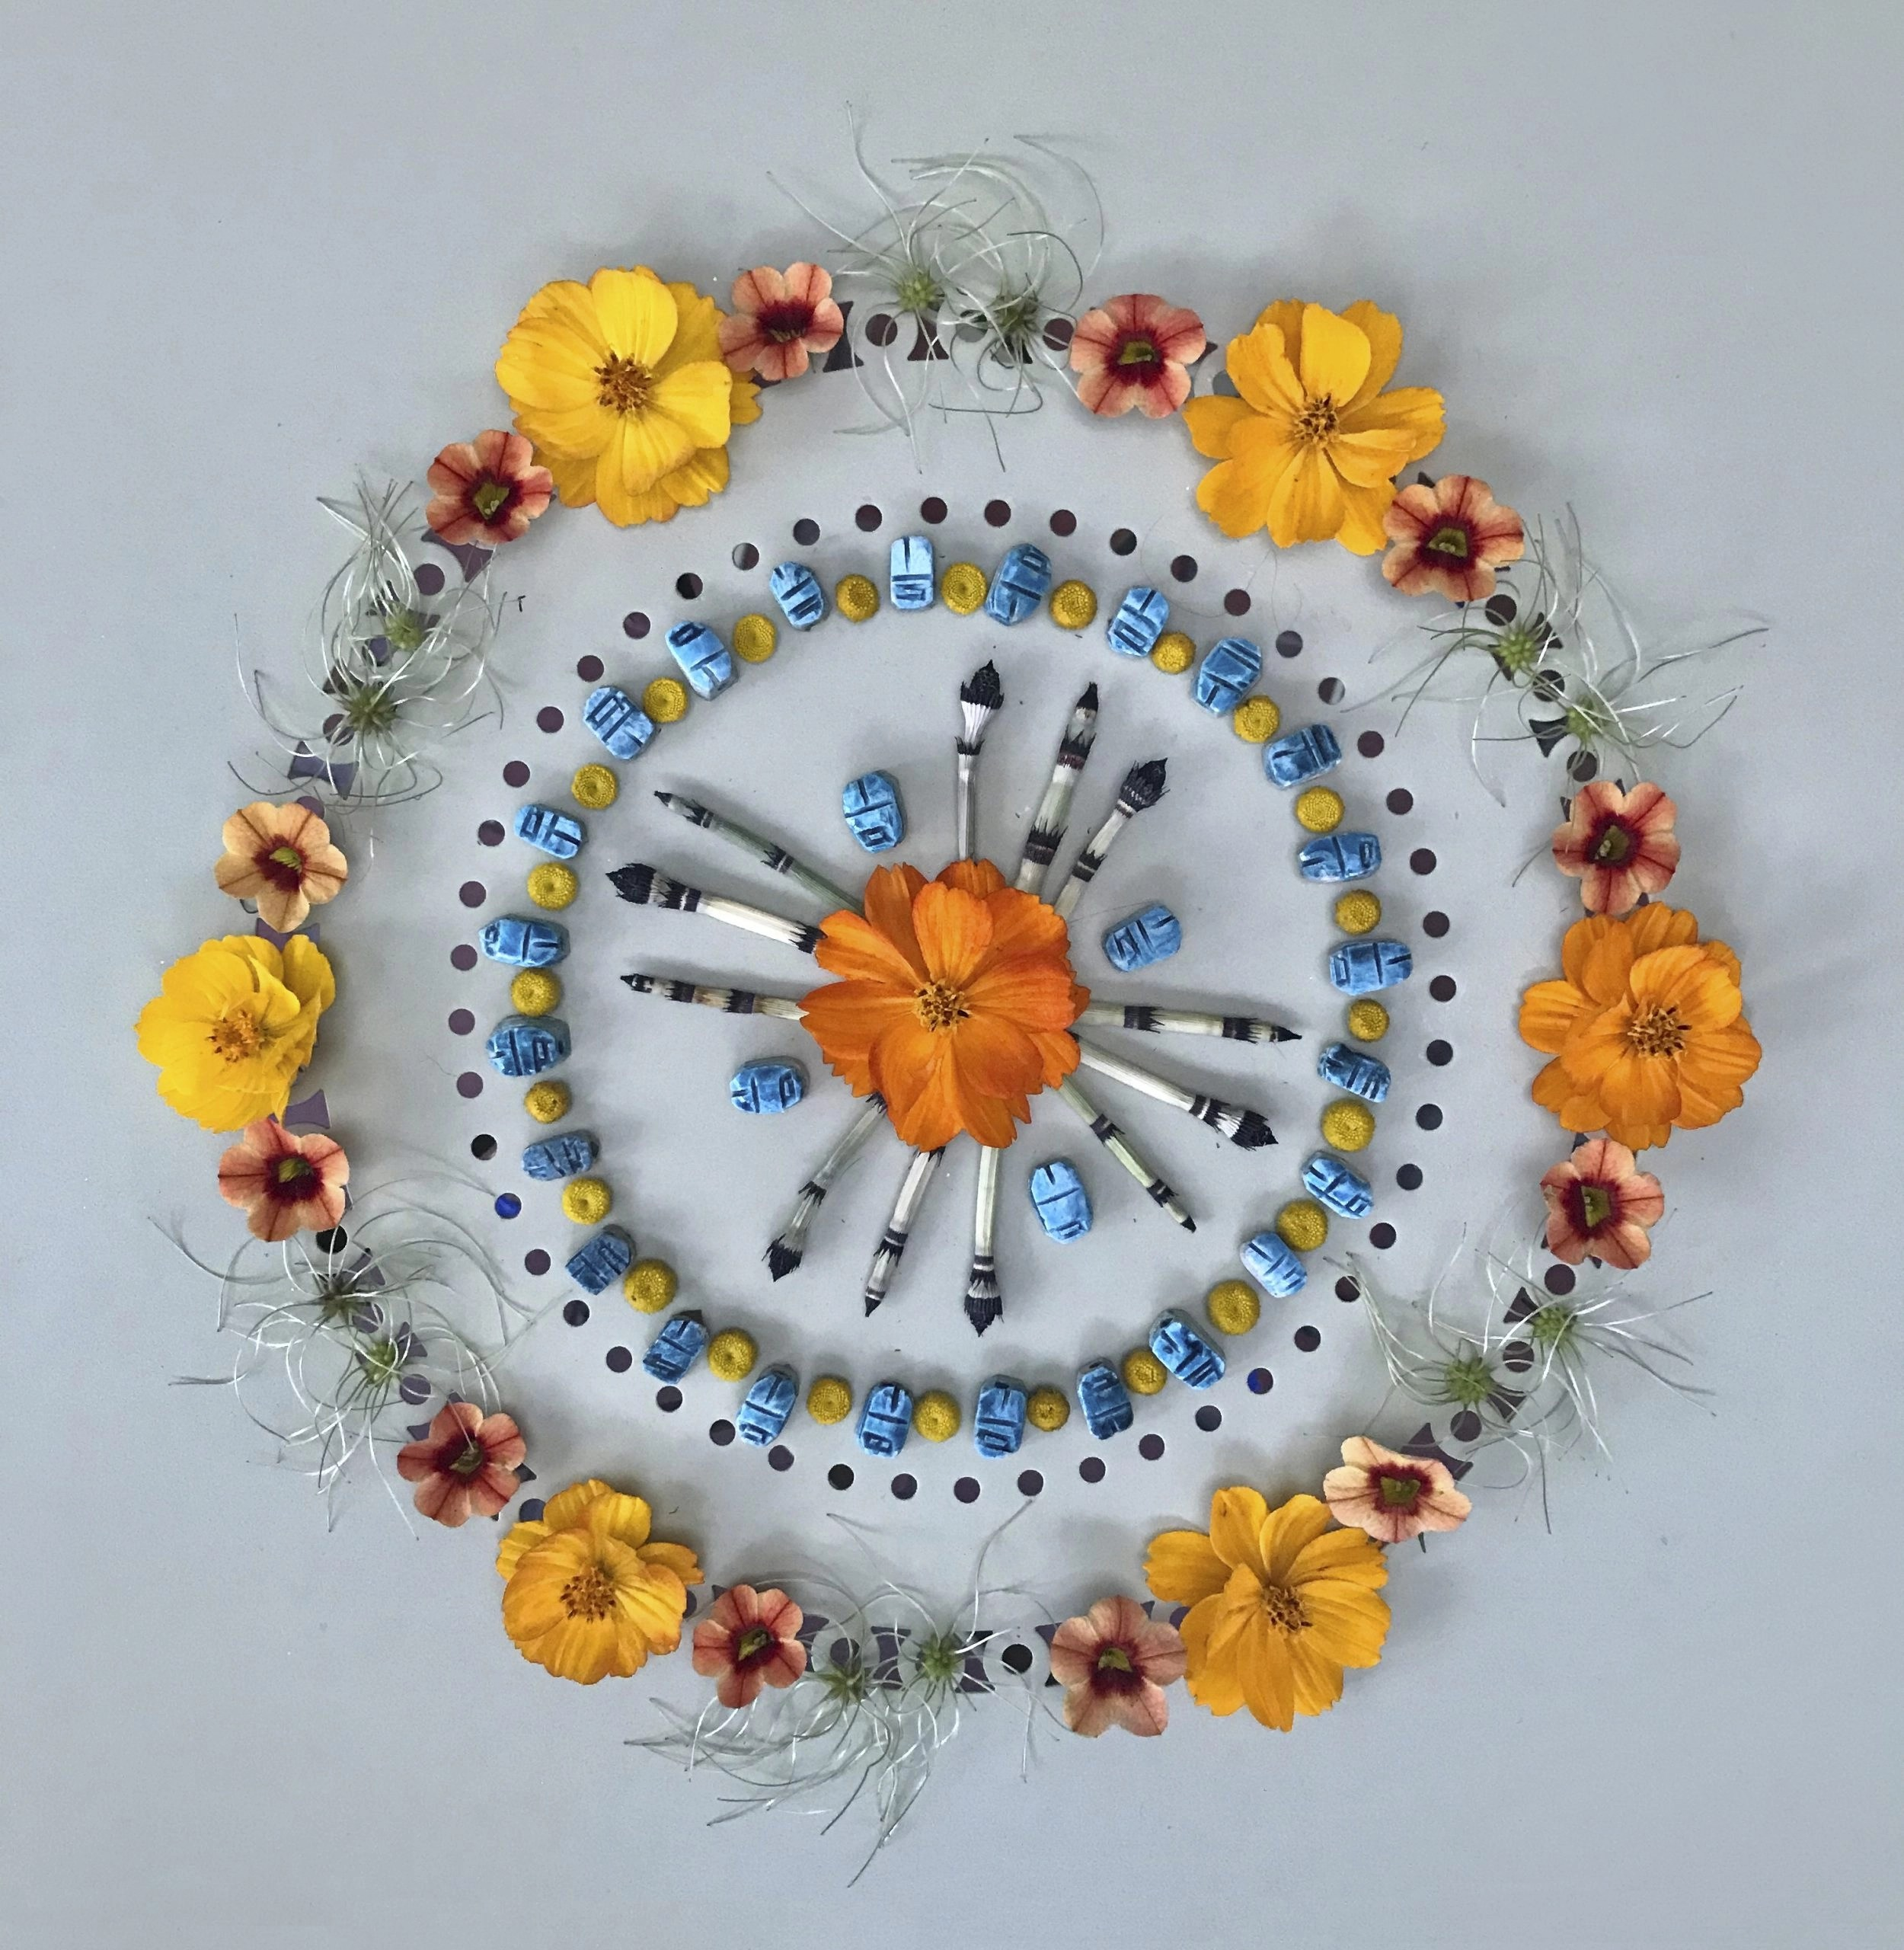 Print with orange flowers and turquoise beads